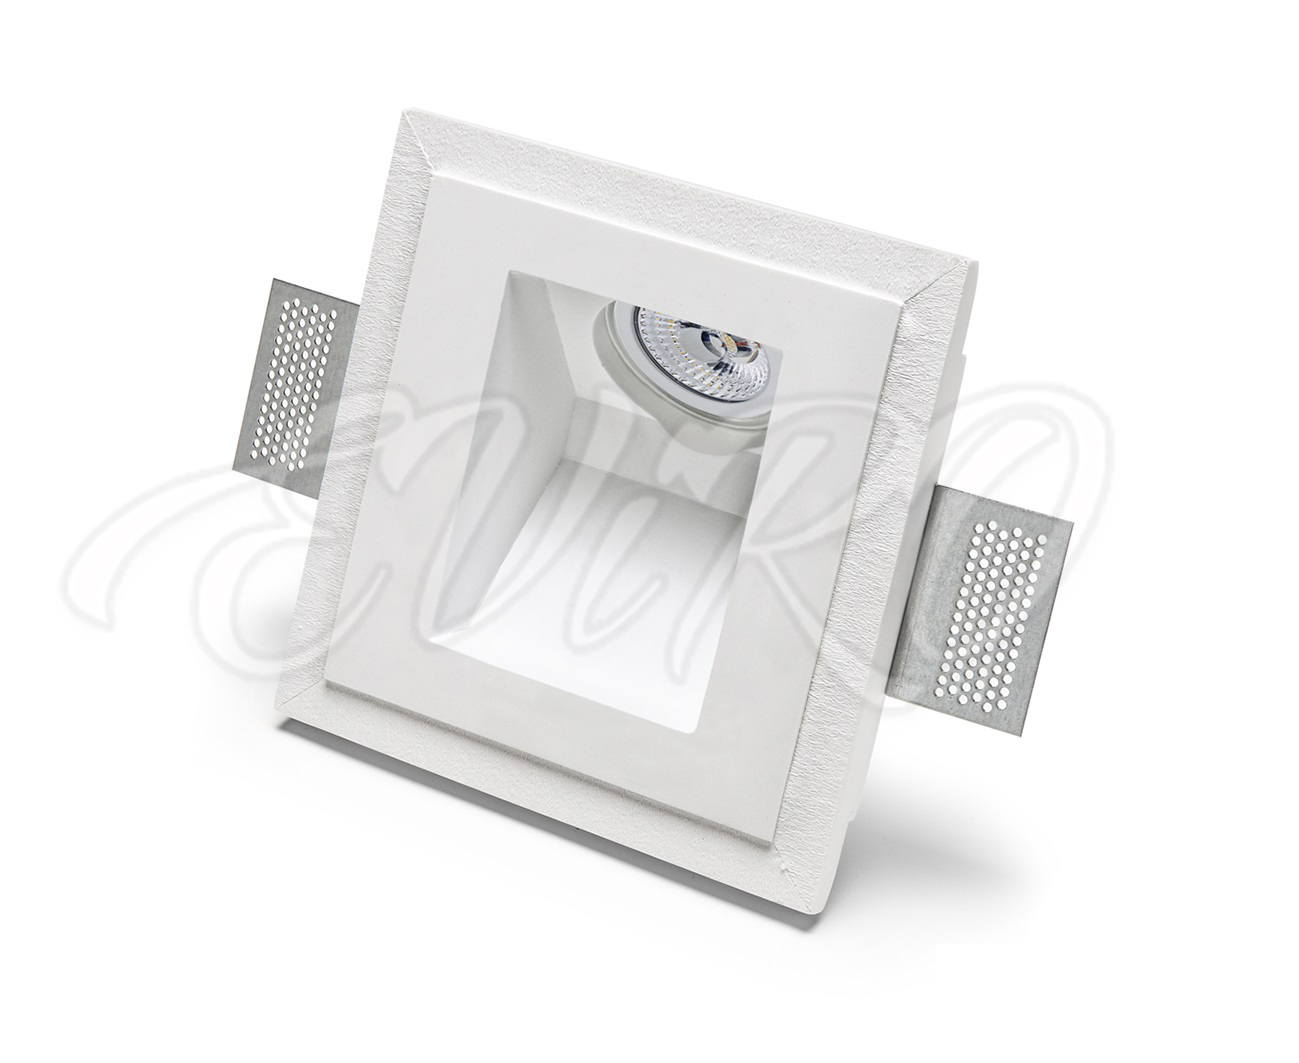 Built-in ceiling lighting fixture EViRO VPS 34